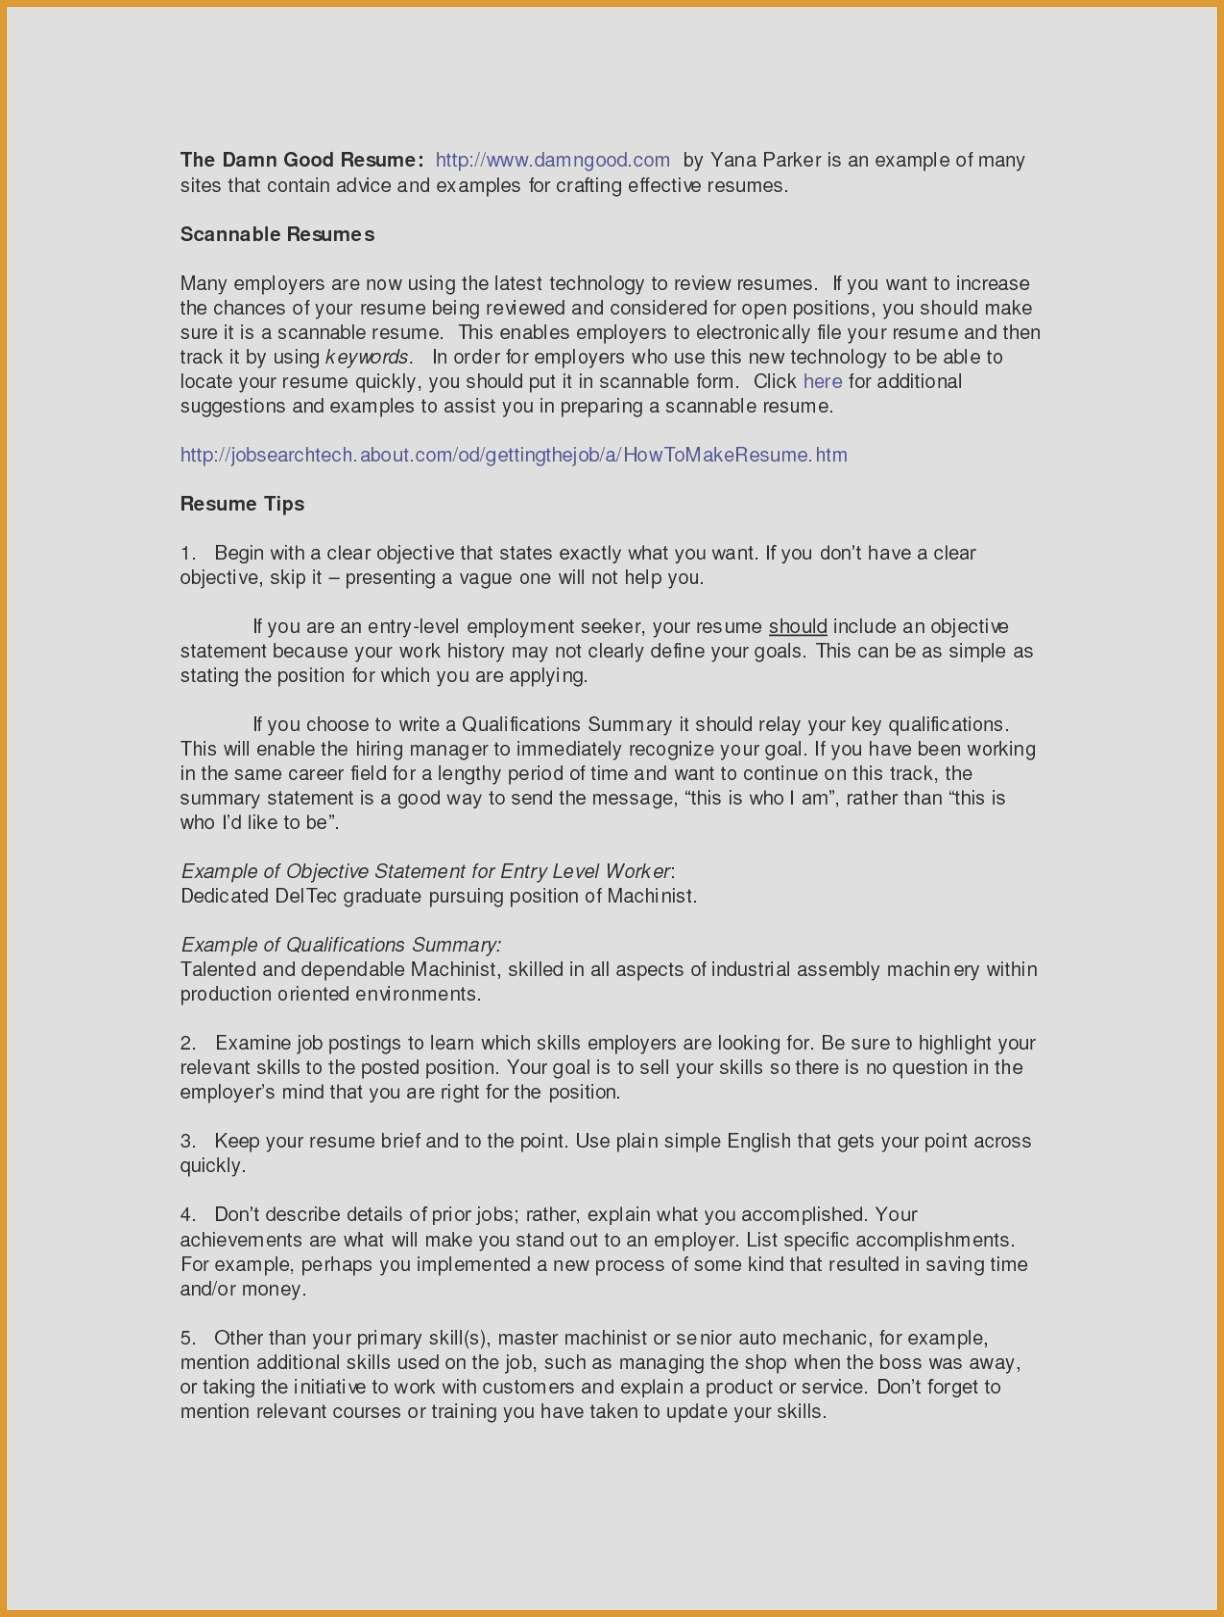 Words to Describe Yourself On A Resume - How to Sell Yourself A Resume New Best Words for Resume